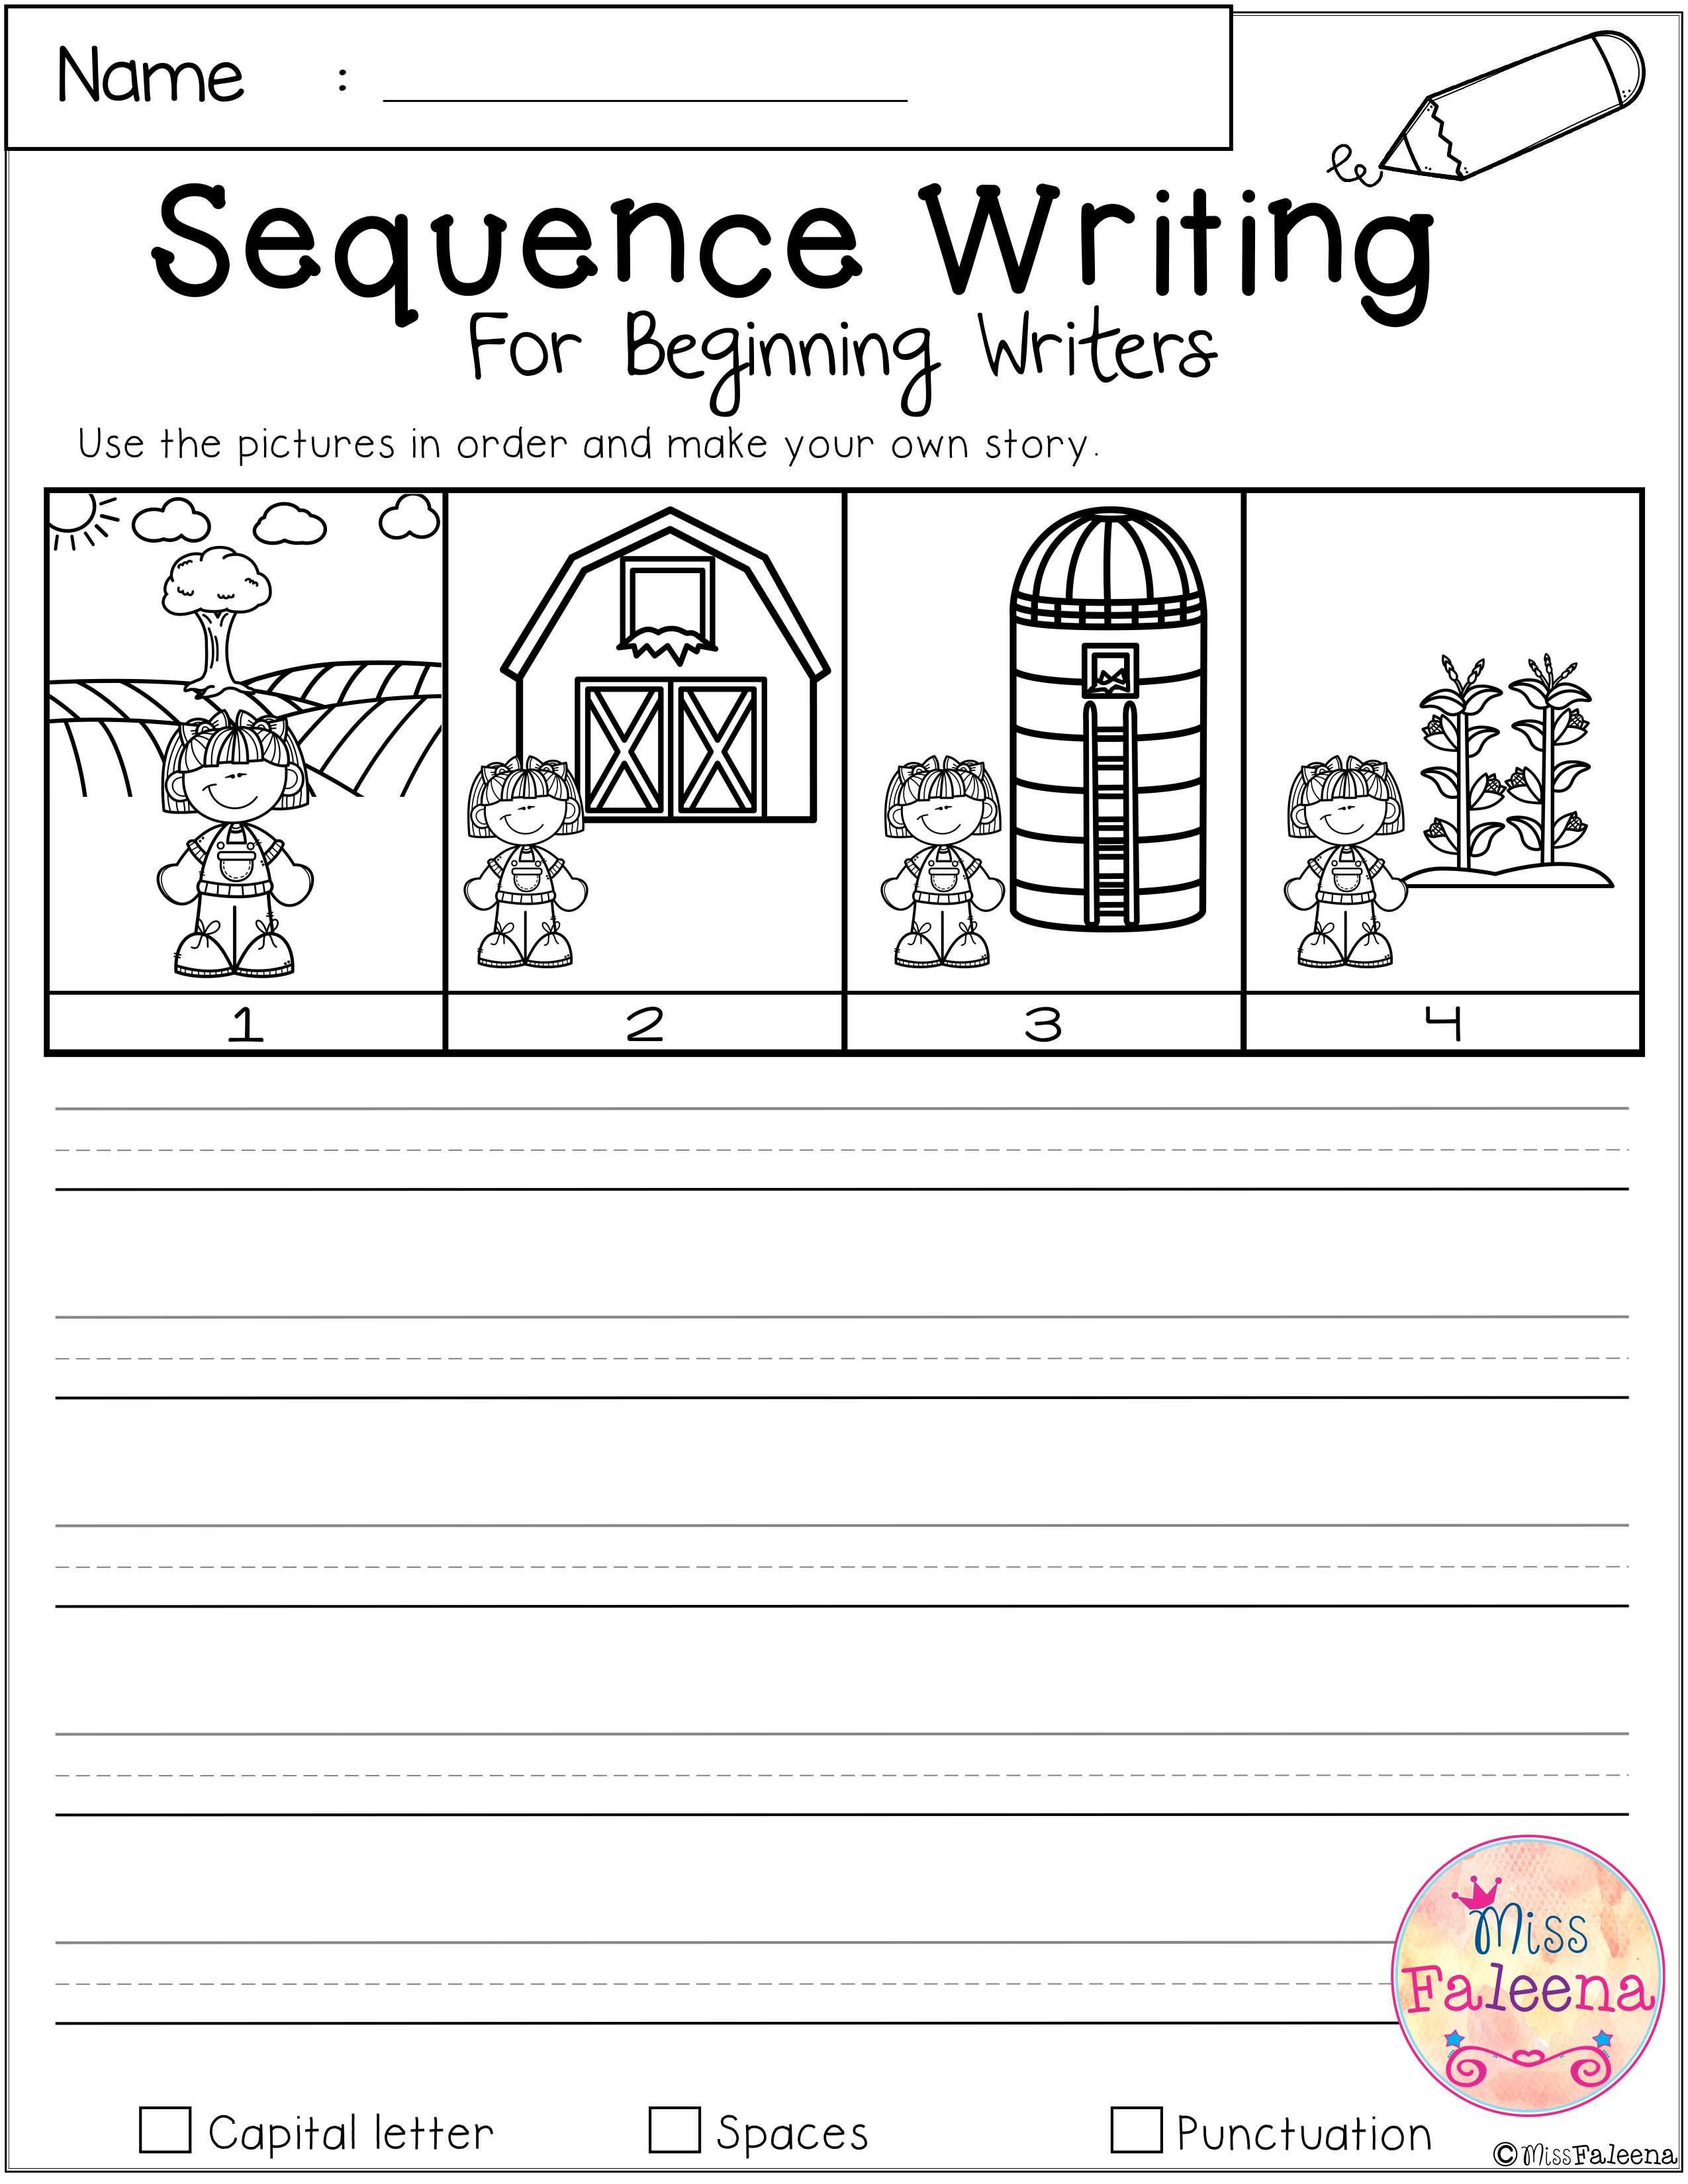 Free Sequence Writing For Beginning Writers Sequence Writing